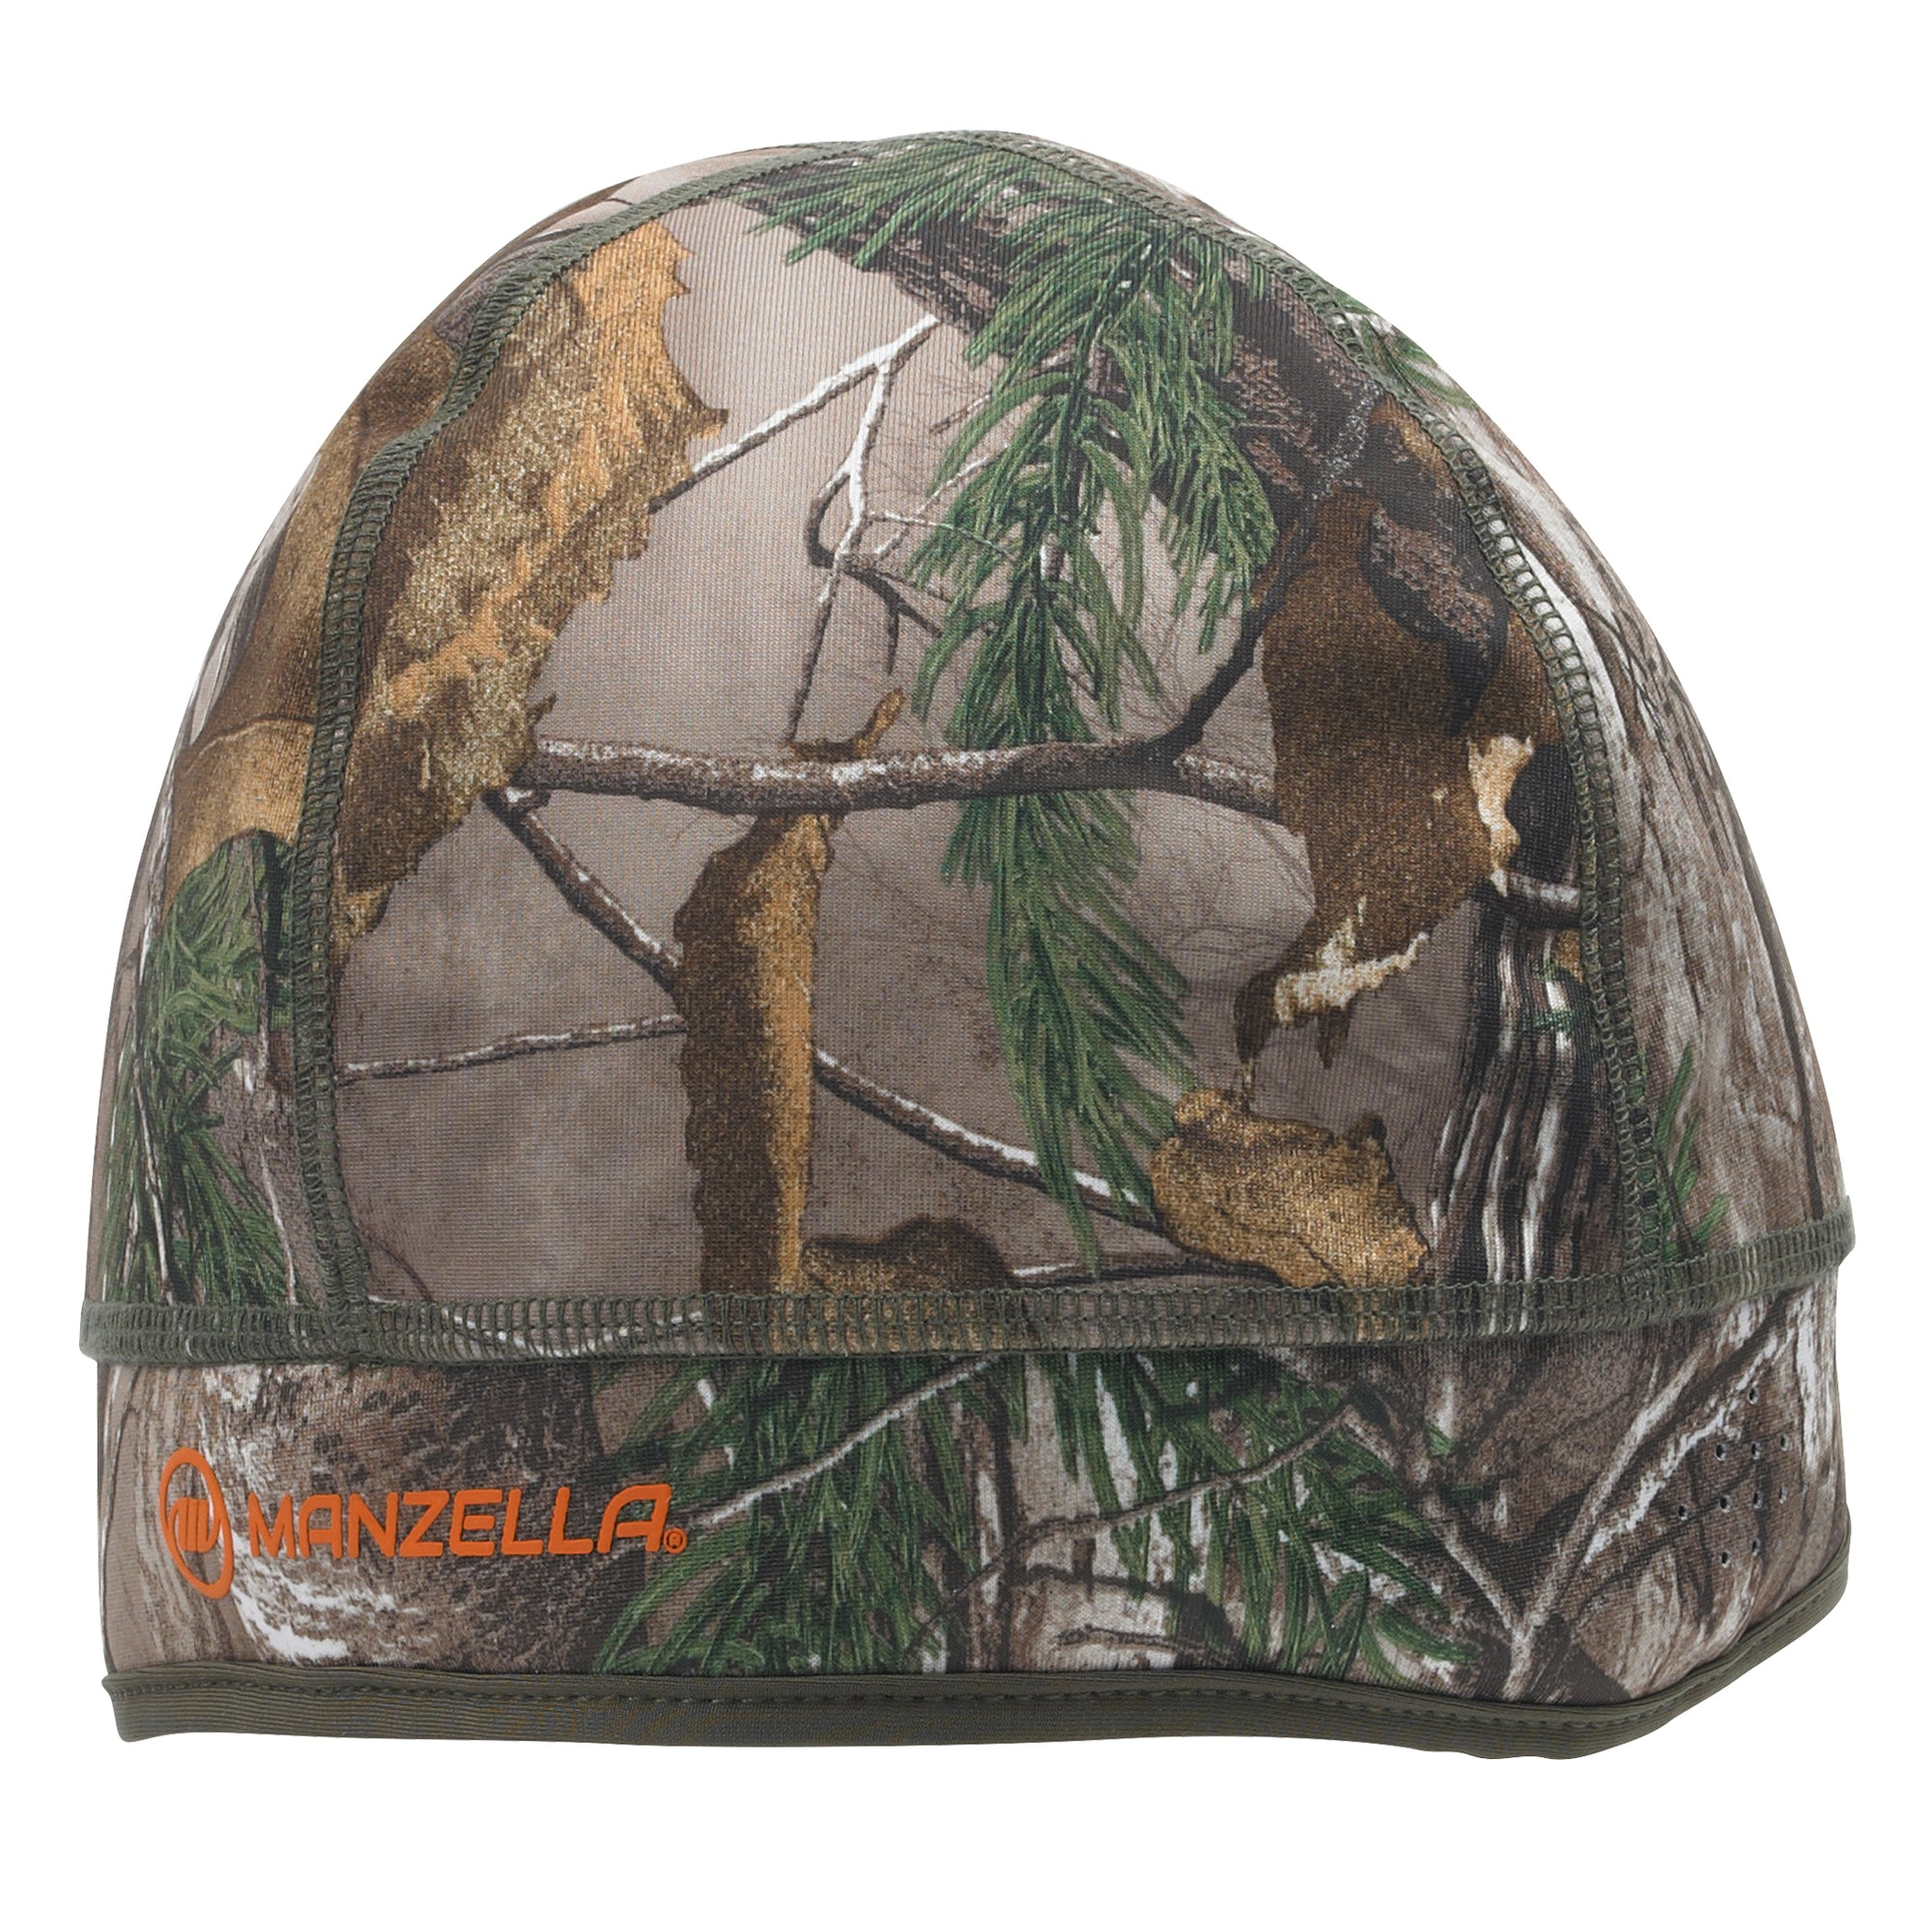 Manzella FORESTER Outdoor Beanie Hat for Men